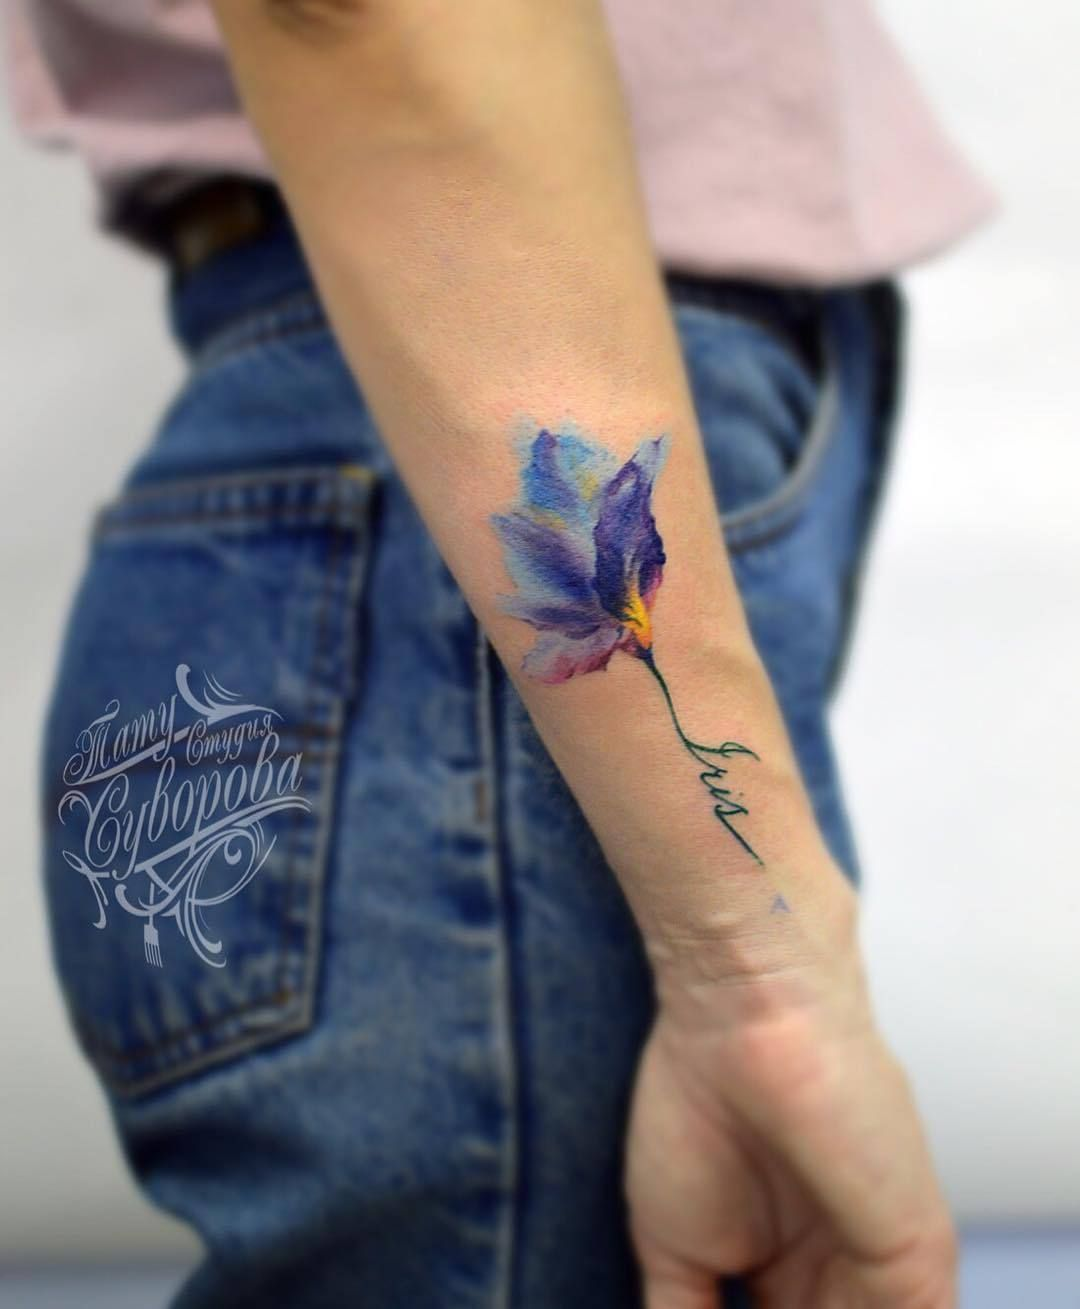 Iris flower tattoo tumblr cool tattoos pinterest iris flower tattoo tumblr tatouage iris ides de tatouages tatouage hanche fleurs izmirmasajfo